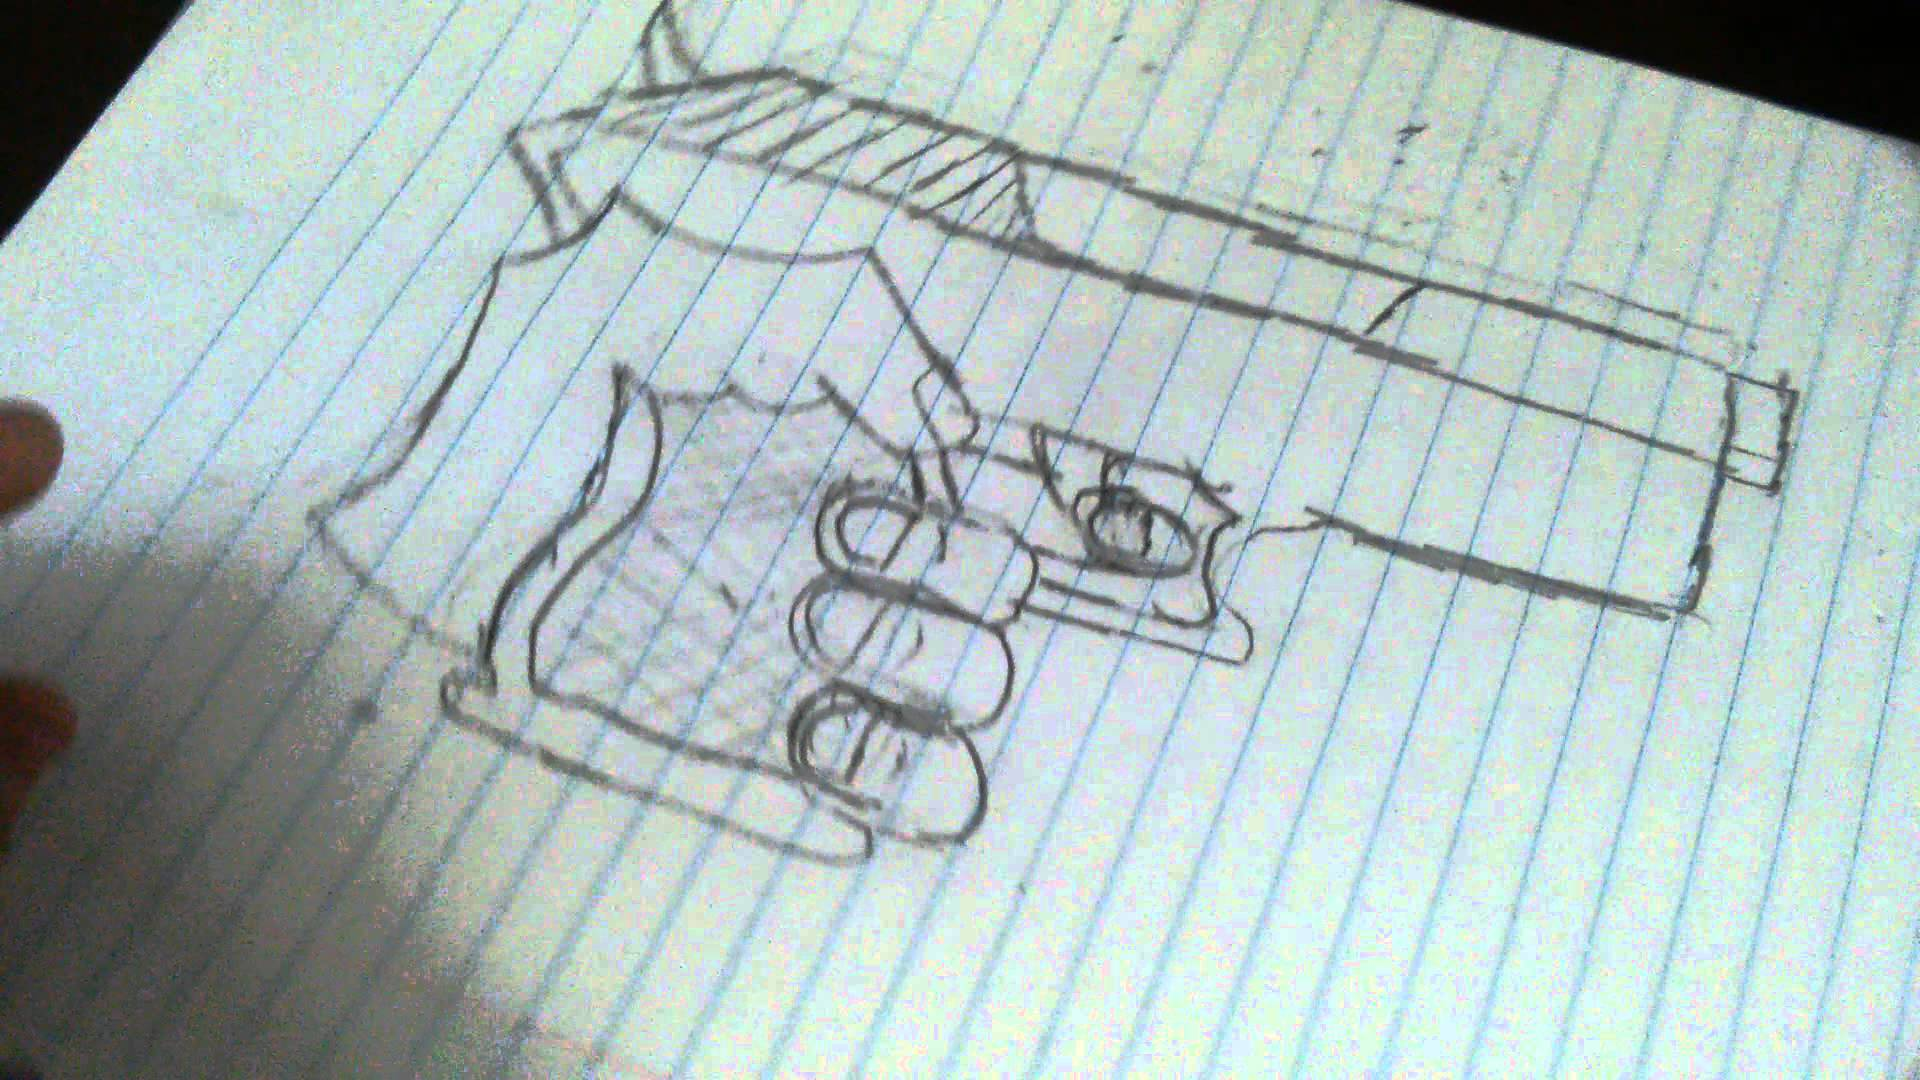 1920x1080 How To Draw Hand Holding Gun Part 2 And Thumbs Up.